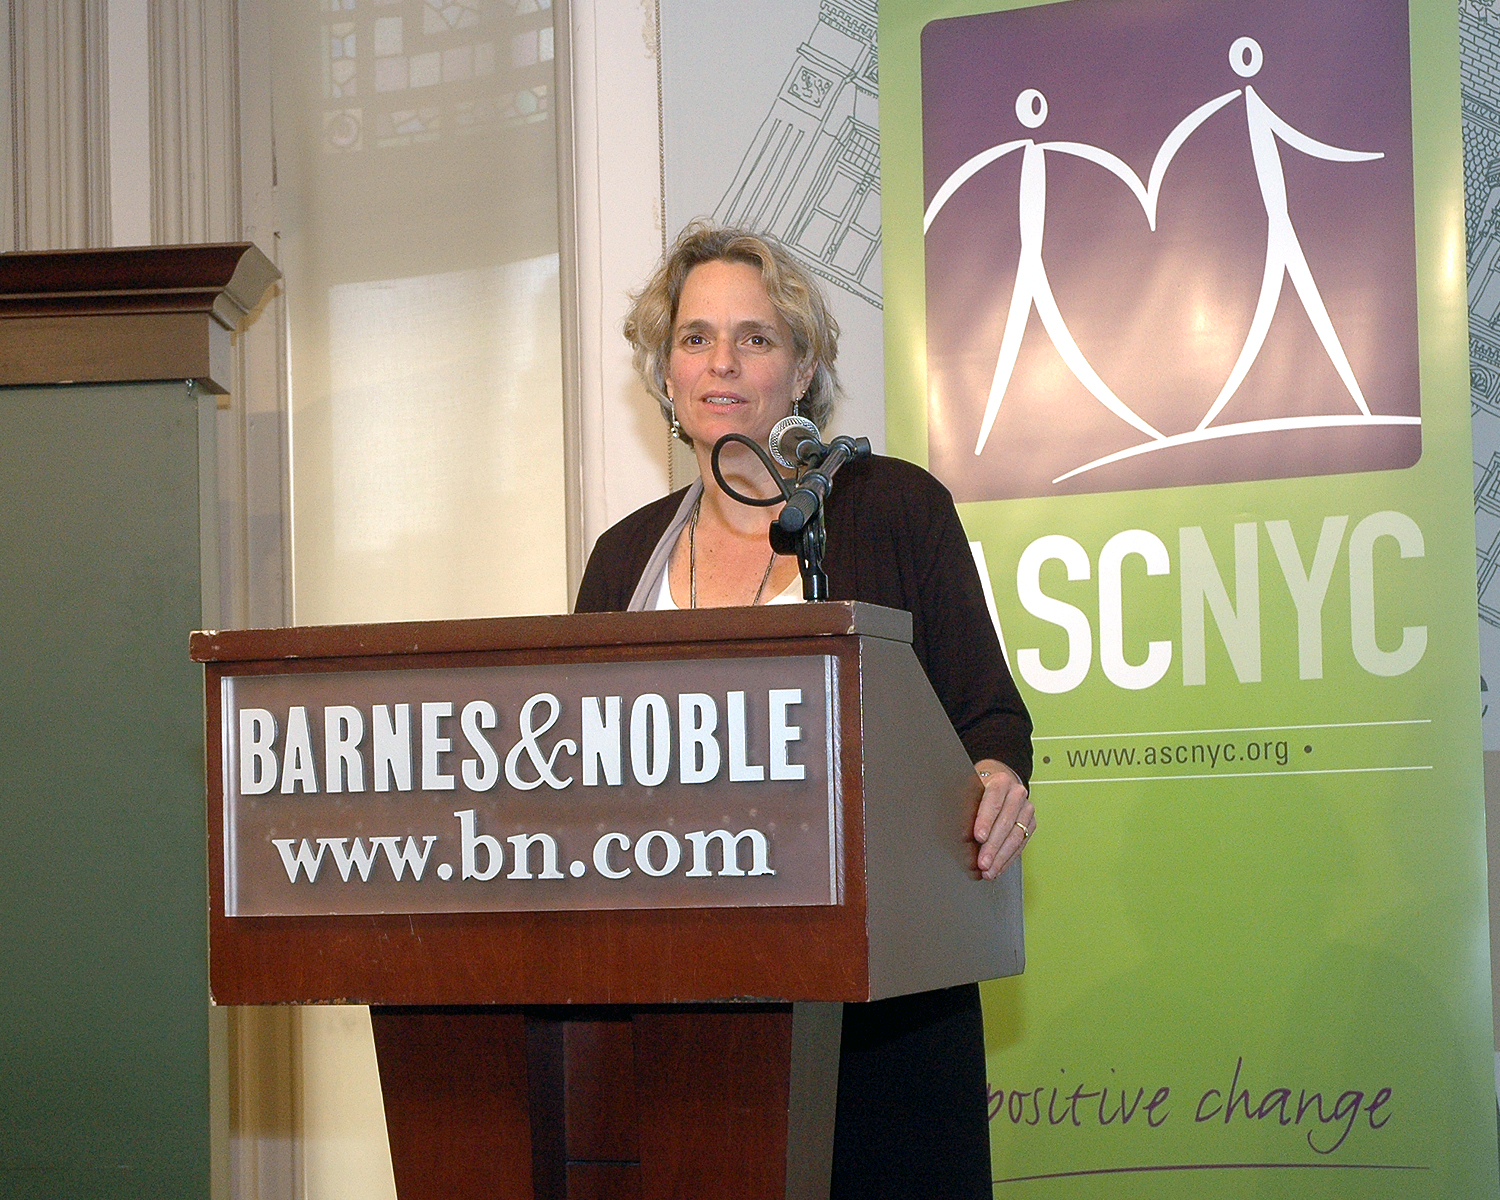 Sharen Duke, ASCNYC Executive Director/CEO